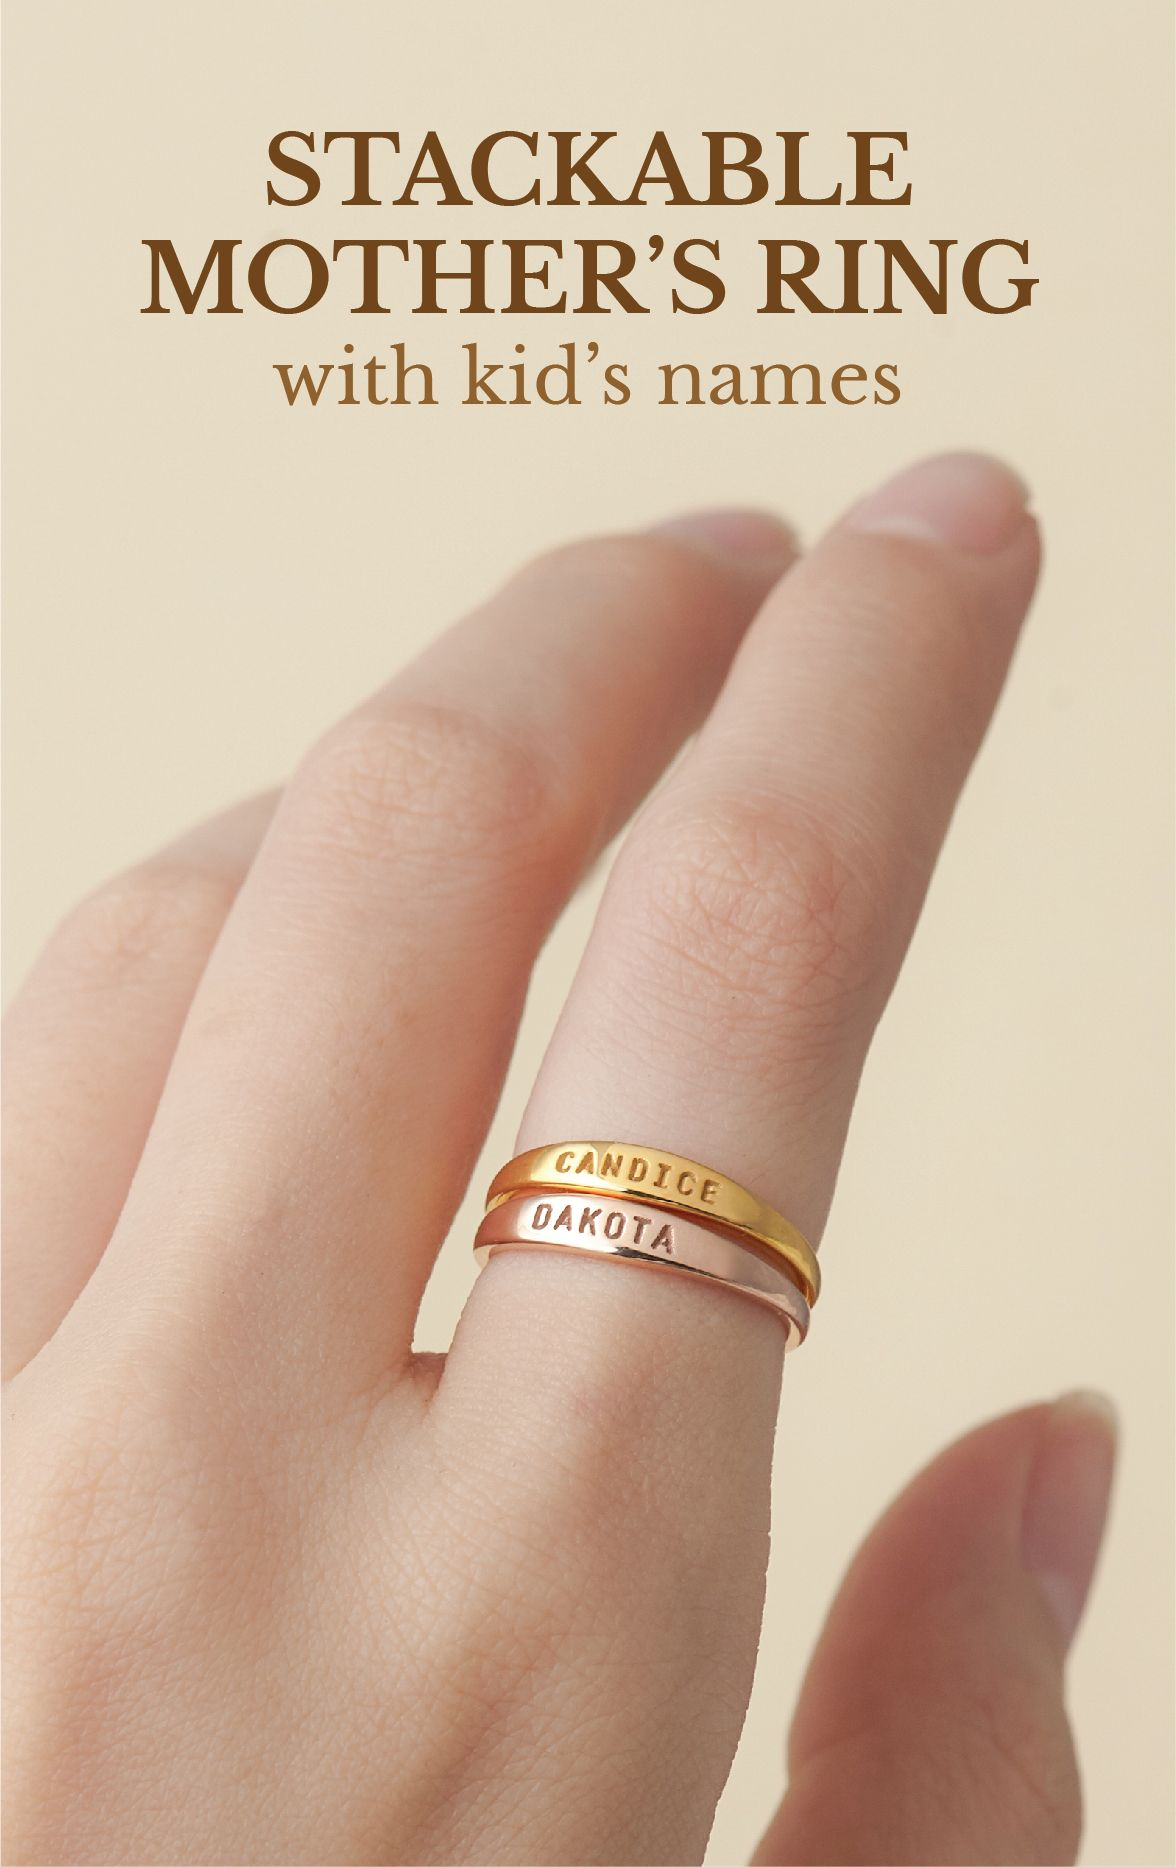 Personalized Rings With Kids Name Birthday Gift Ideas For Mother Custom Made Jewelr Mothers Ring Stackable Unique Gifts For Mom Personalized Gifts For Her